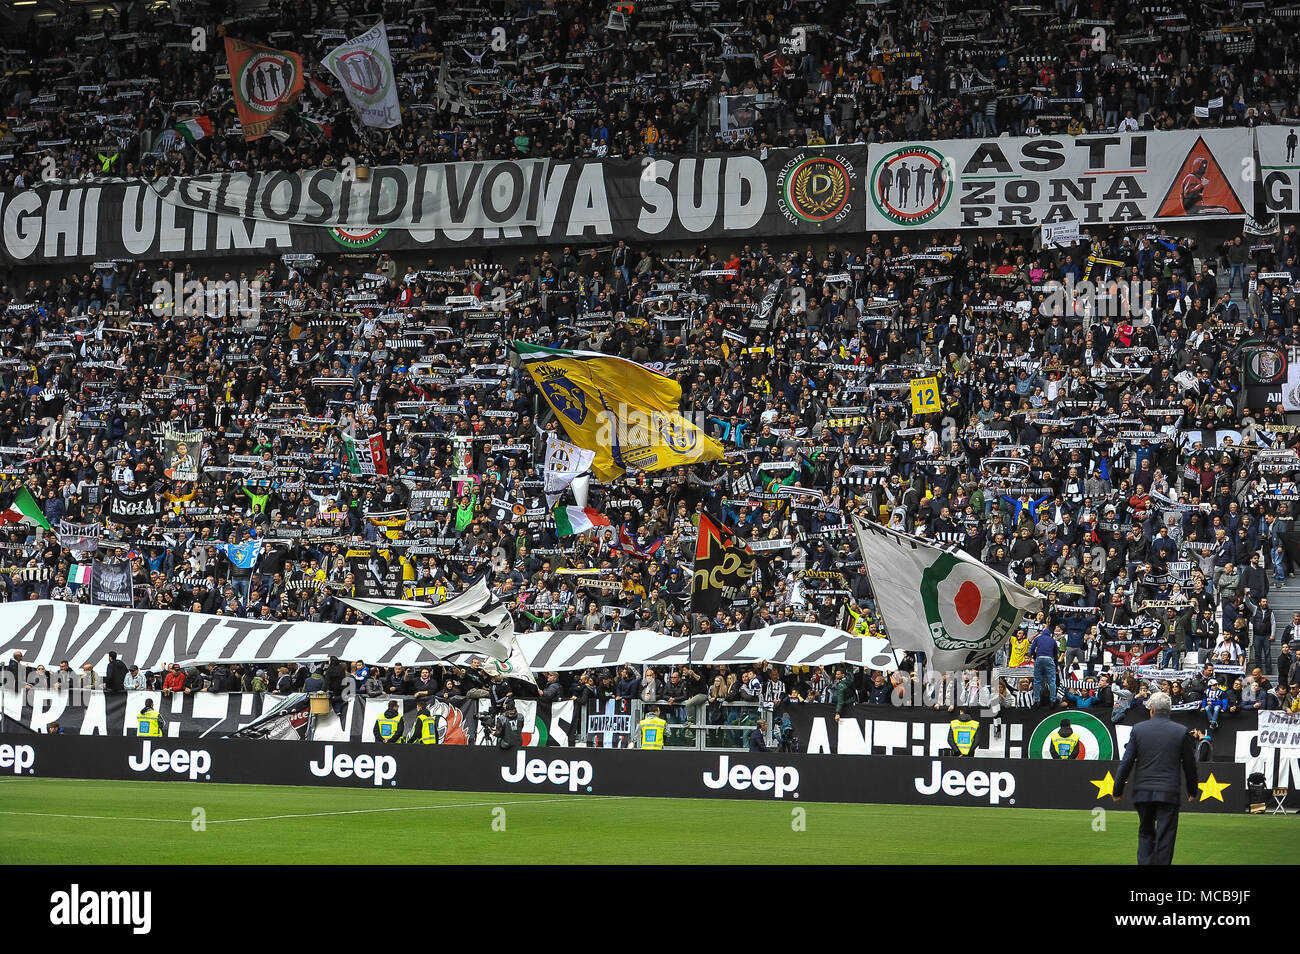 Turin, Italy. 15th Apr, 2018. during the Serie A football match between Juventus FC and UC Sampdoria at Allianz Stadium on 15 April, 2018 in Turin, Italy. Credit: FABIO PETROSINO/Alamy Live News Stock Photo